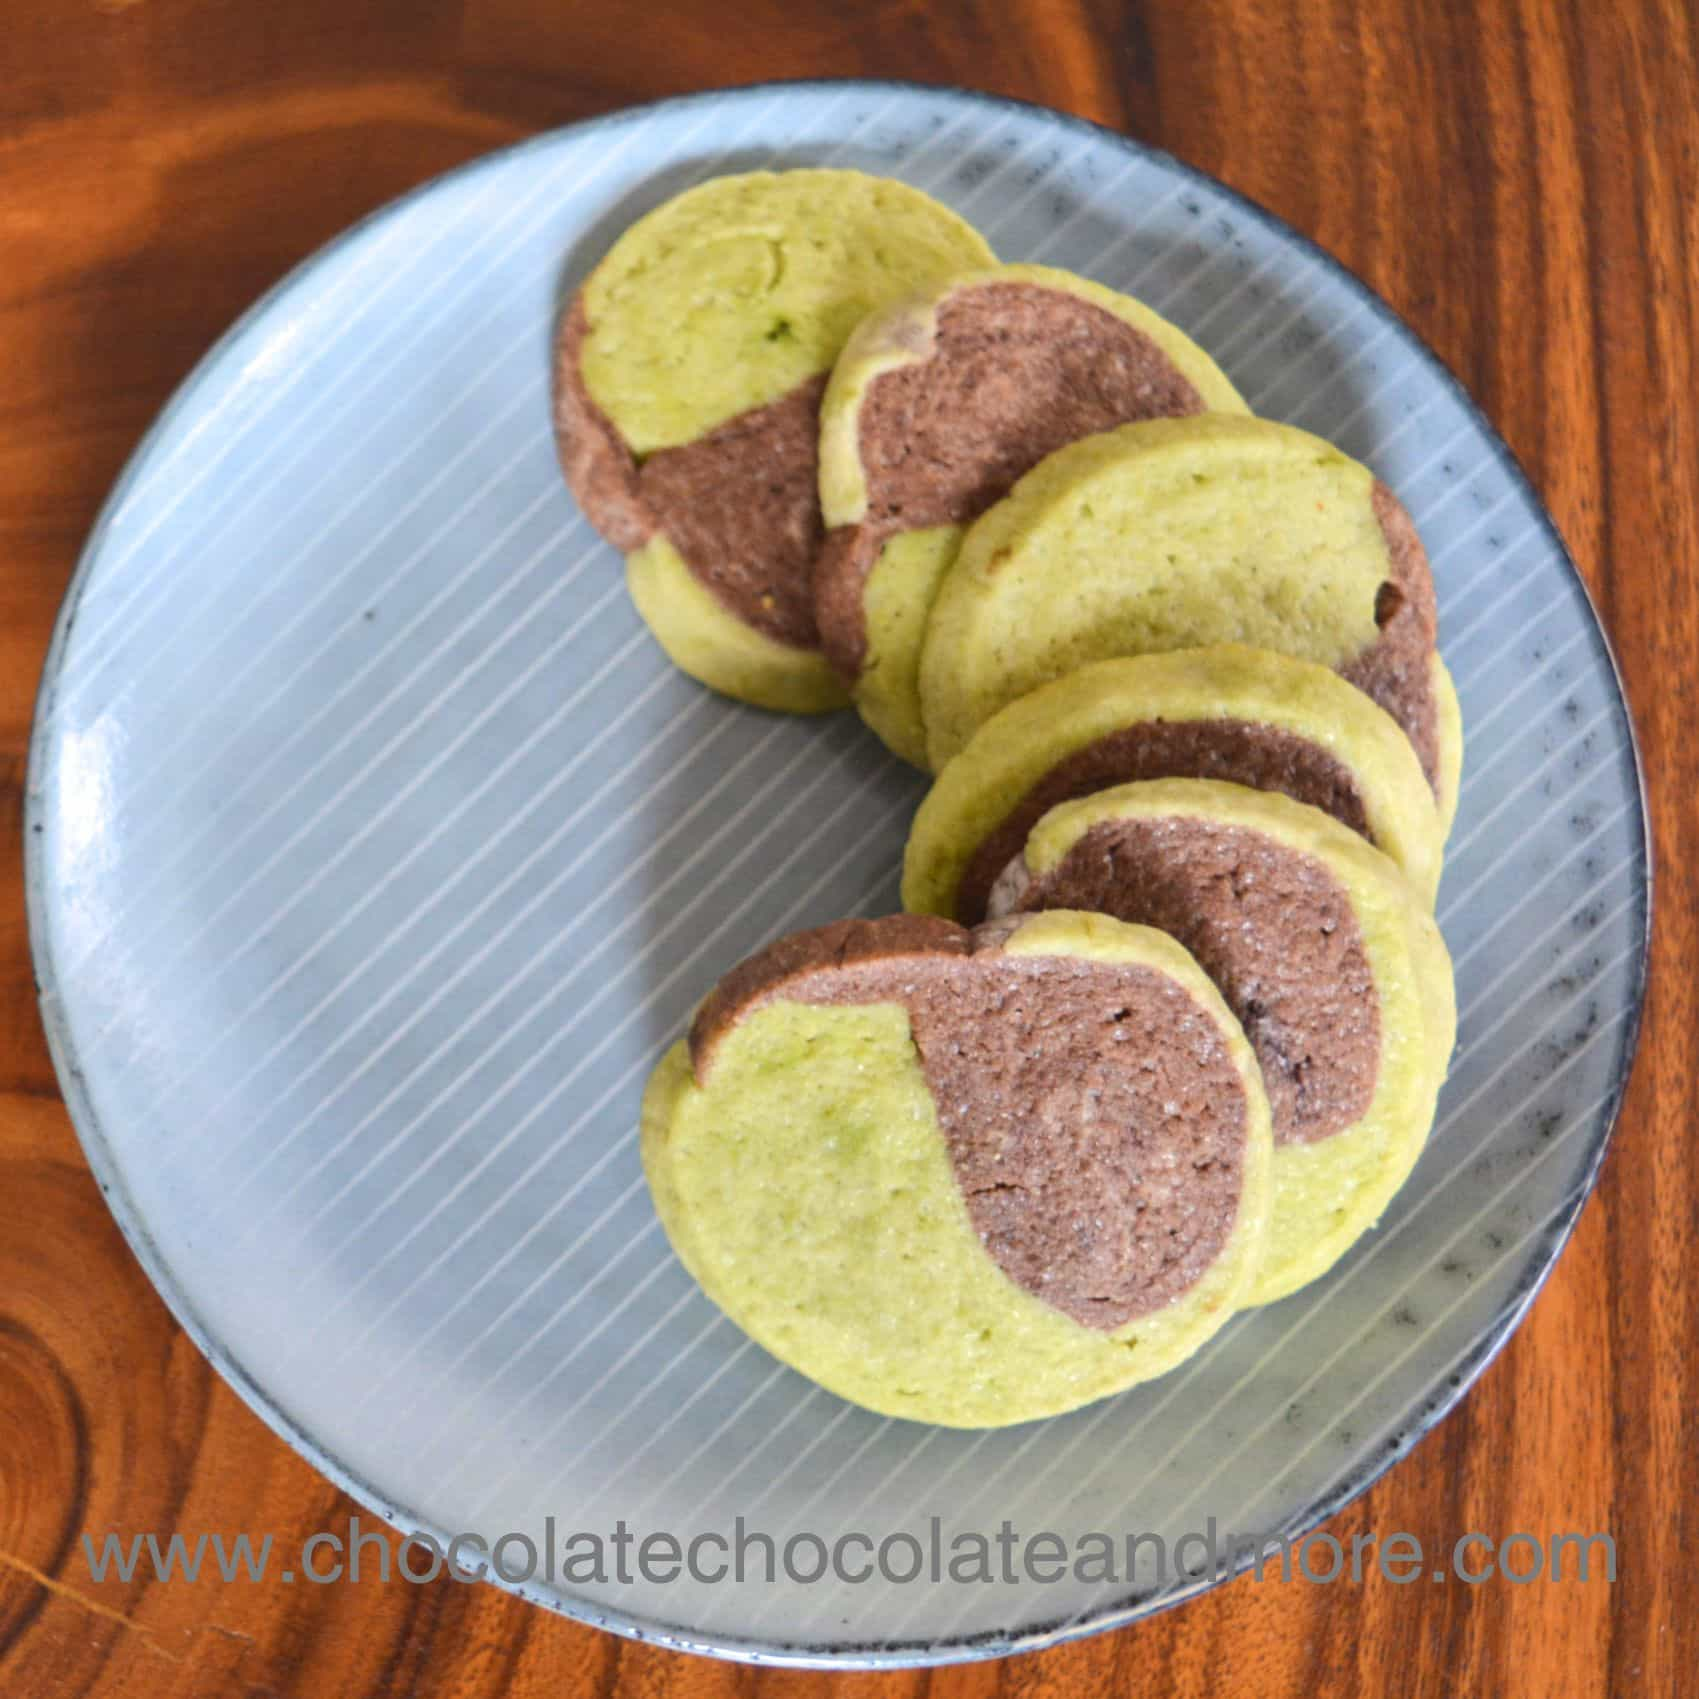 several cookies on a plate with swirled together chocolate and green